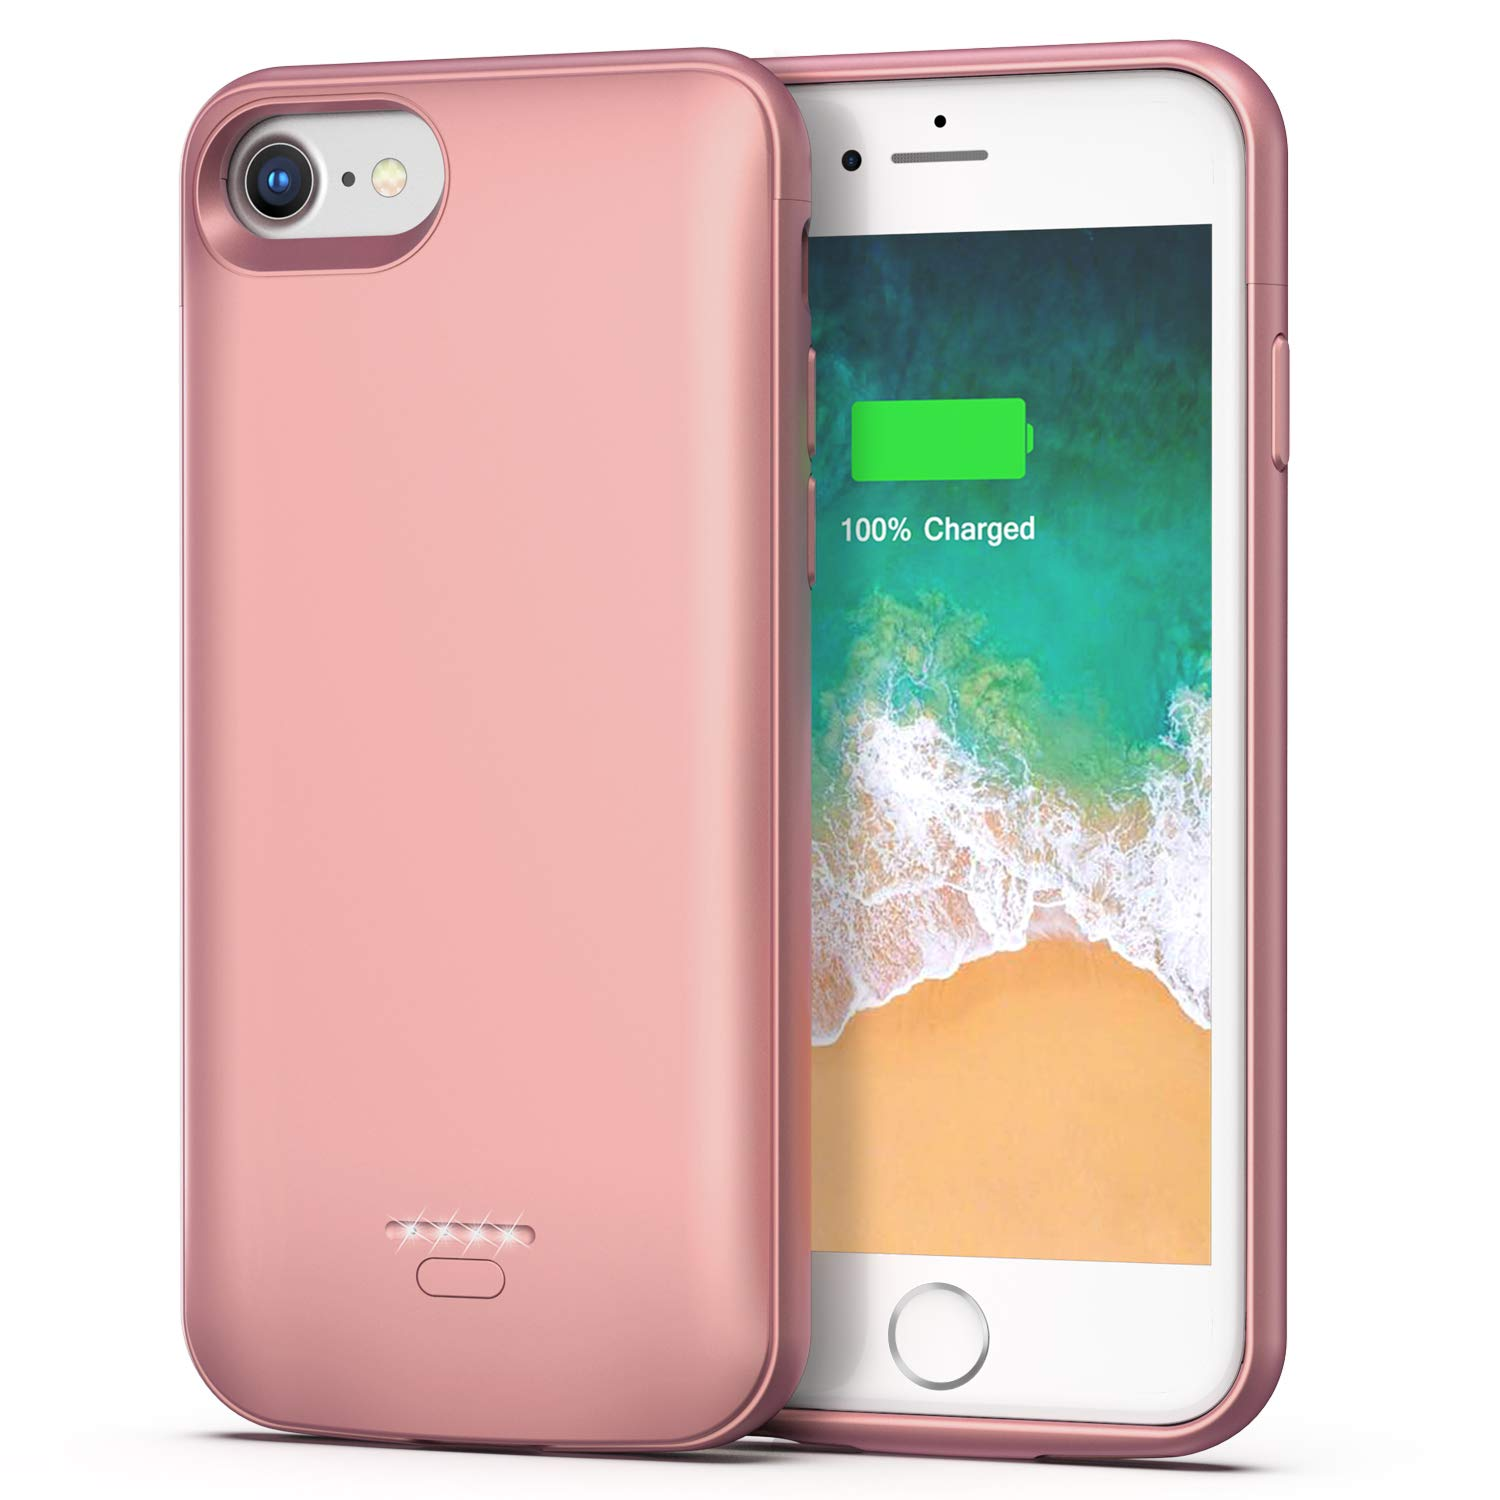 Smiphee iPhone 6 6s Battery Case, 4000mAh Portable Protective Charging Case for iPhone 6 6s(4.7 inch) Extended Battery Charger Case (Rose Gold) by Smiphee